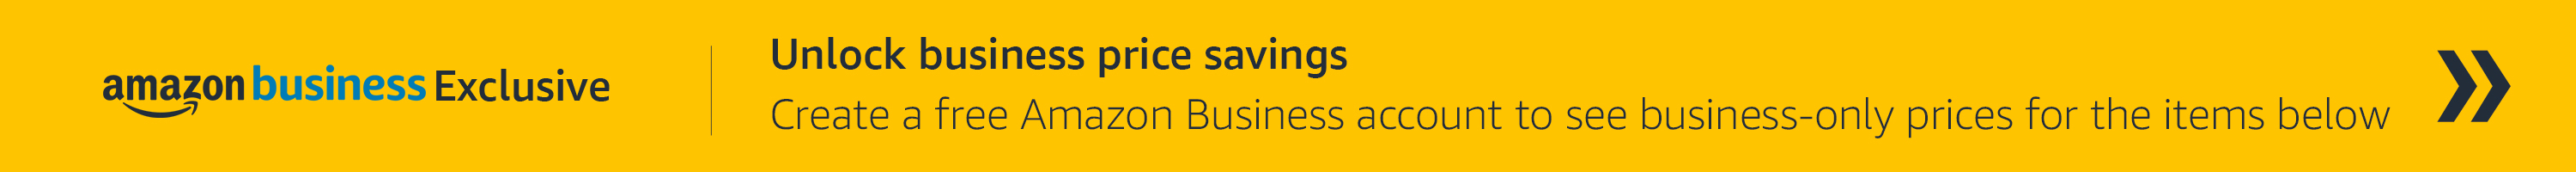 Unlock business price savings Create a free Amazon Business account to see business-only prices for the items below.